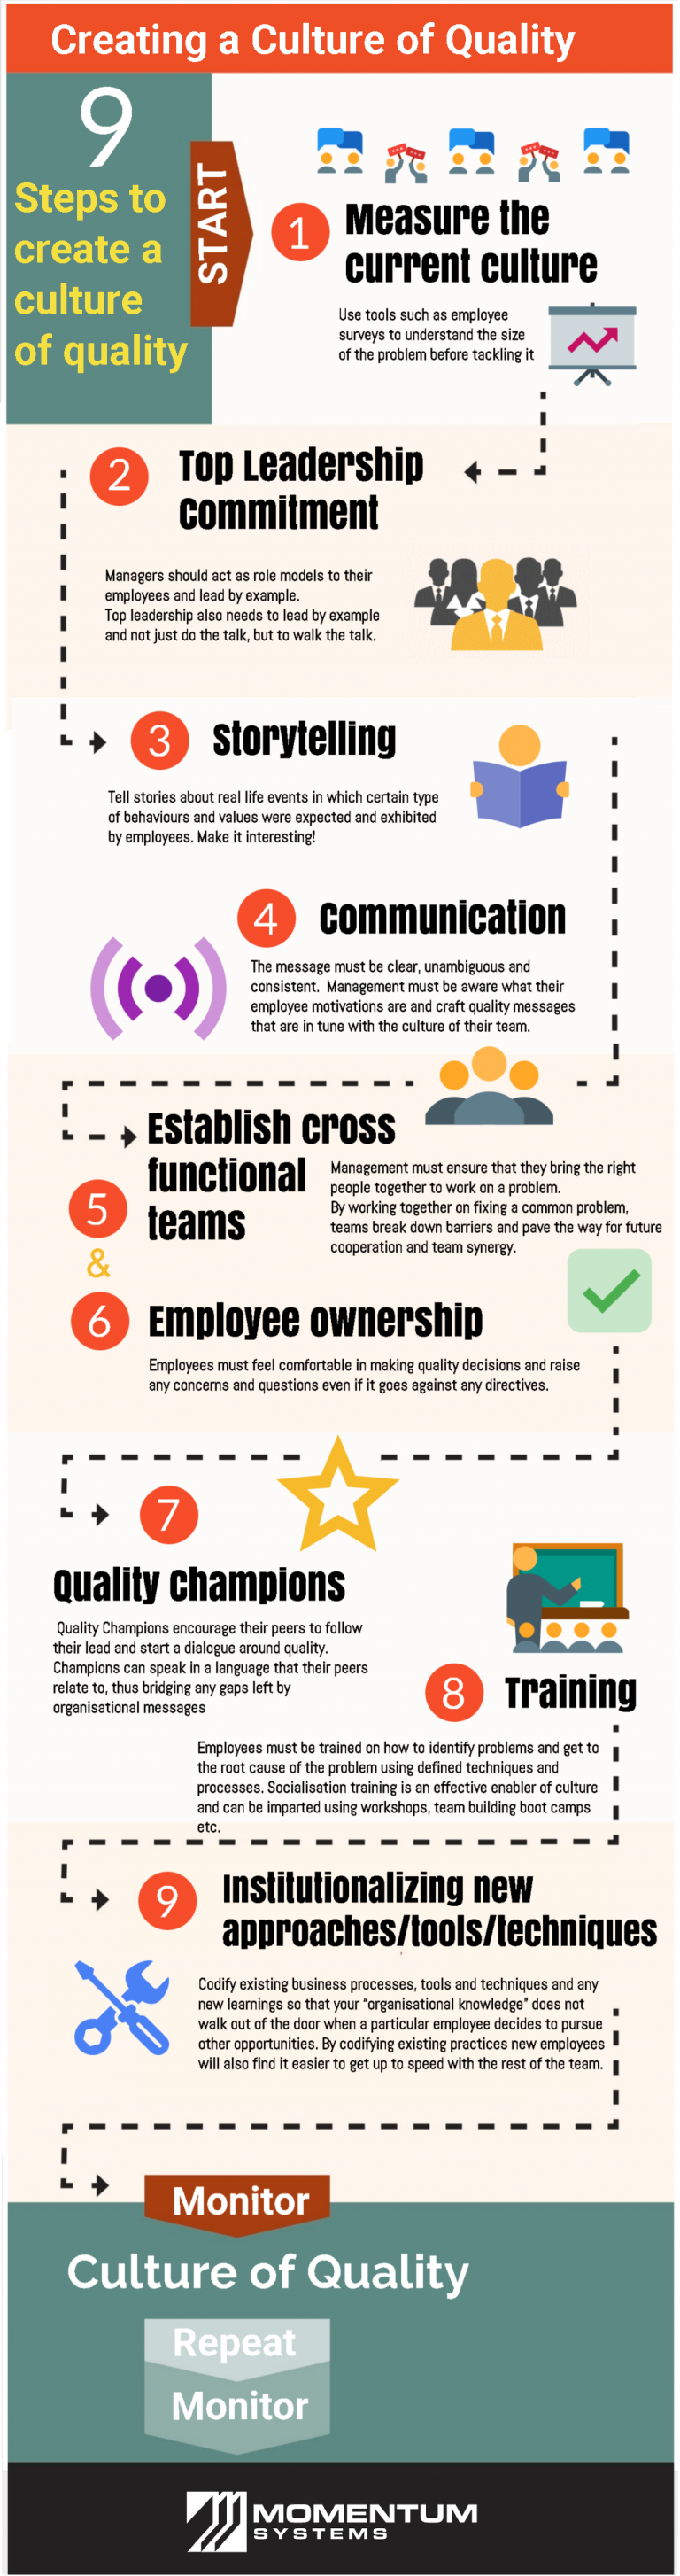 9 steps to create a Culture of Quality